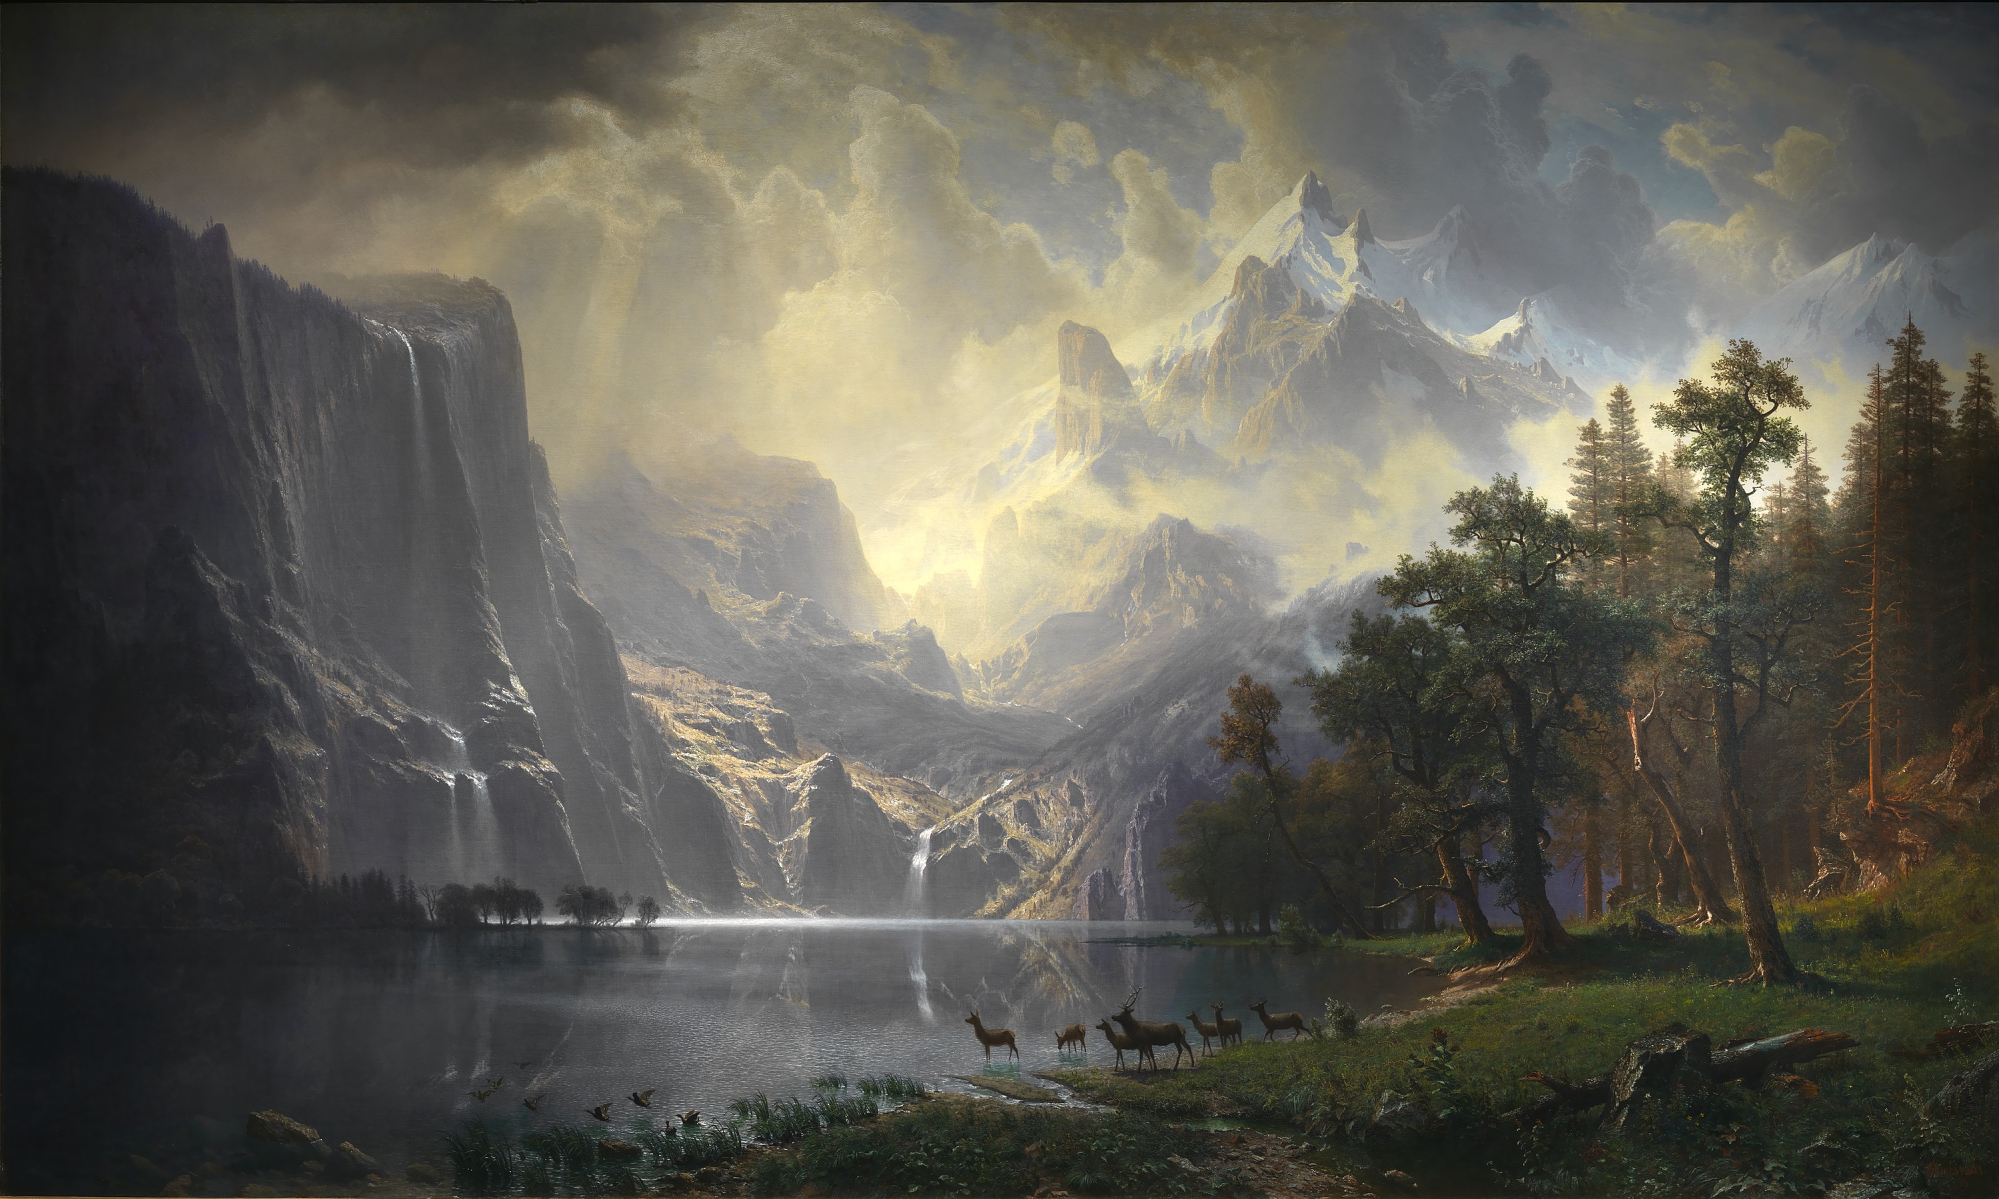 Albert_Bierstadt,_Among_the_Sierra_Nevad